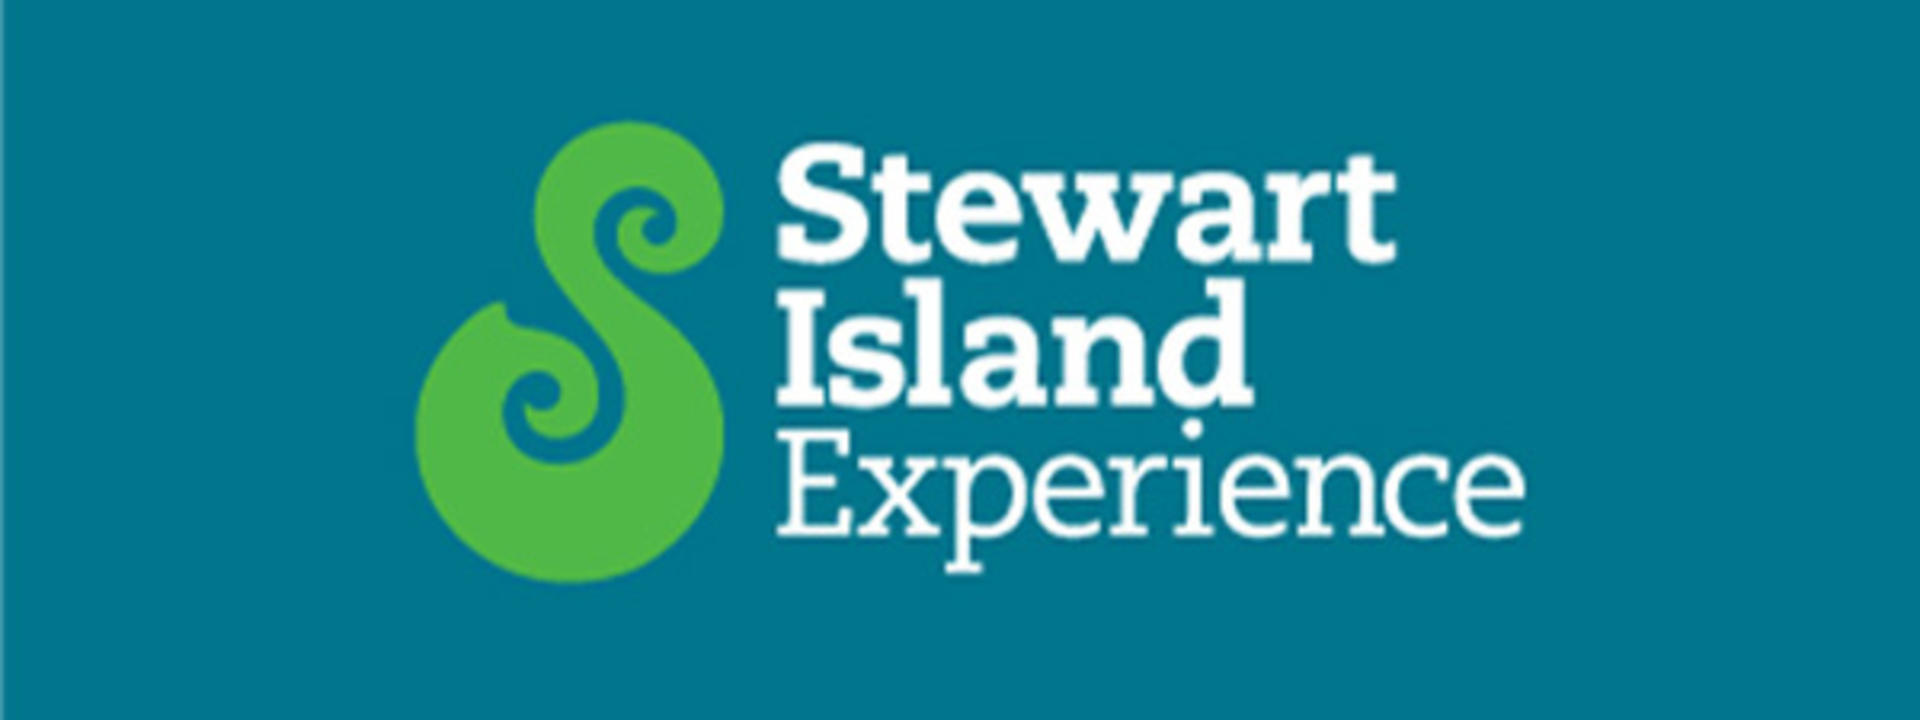 Logo: Rental cars, motor scooters, mountain bike hire - Stewart Island Experience